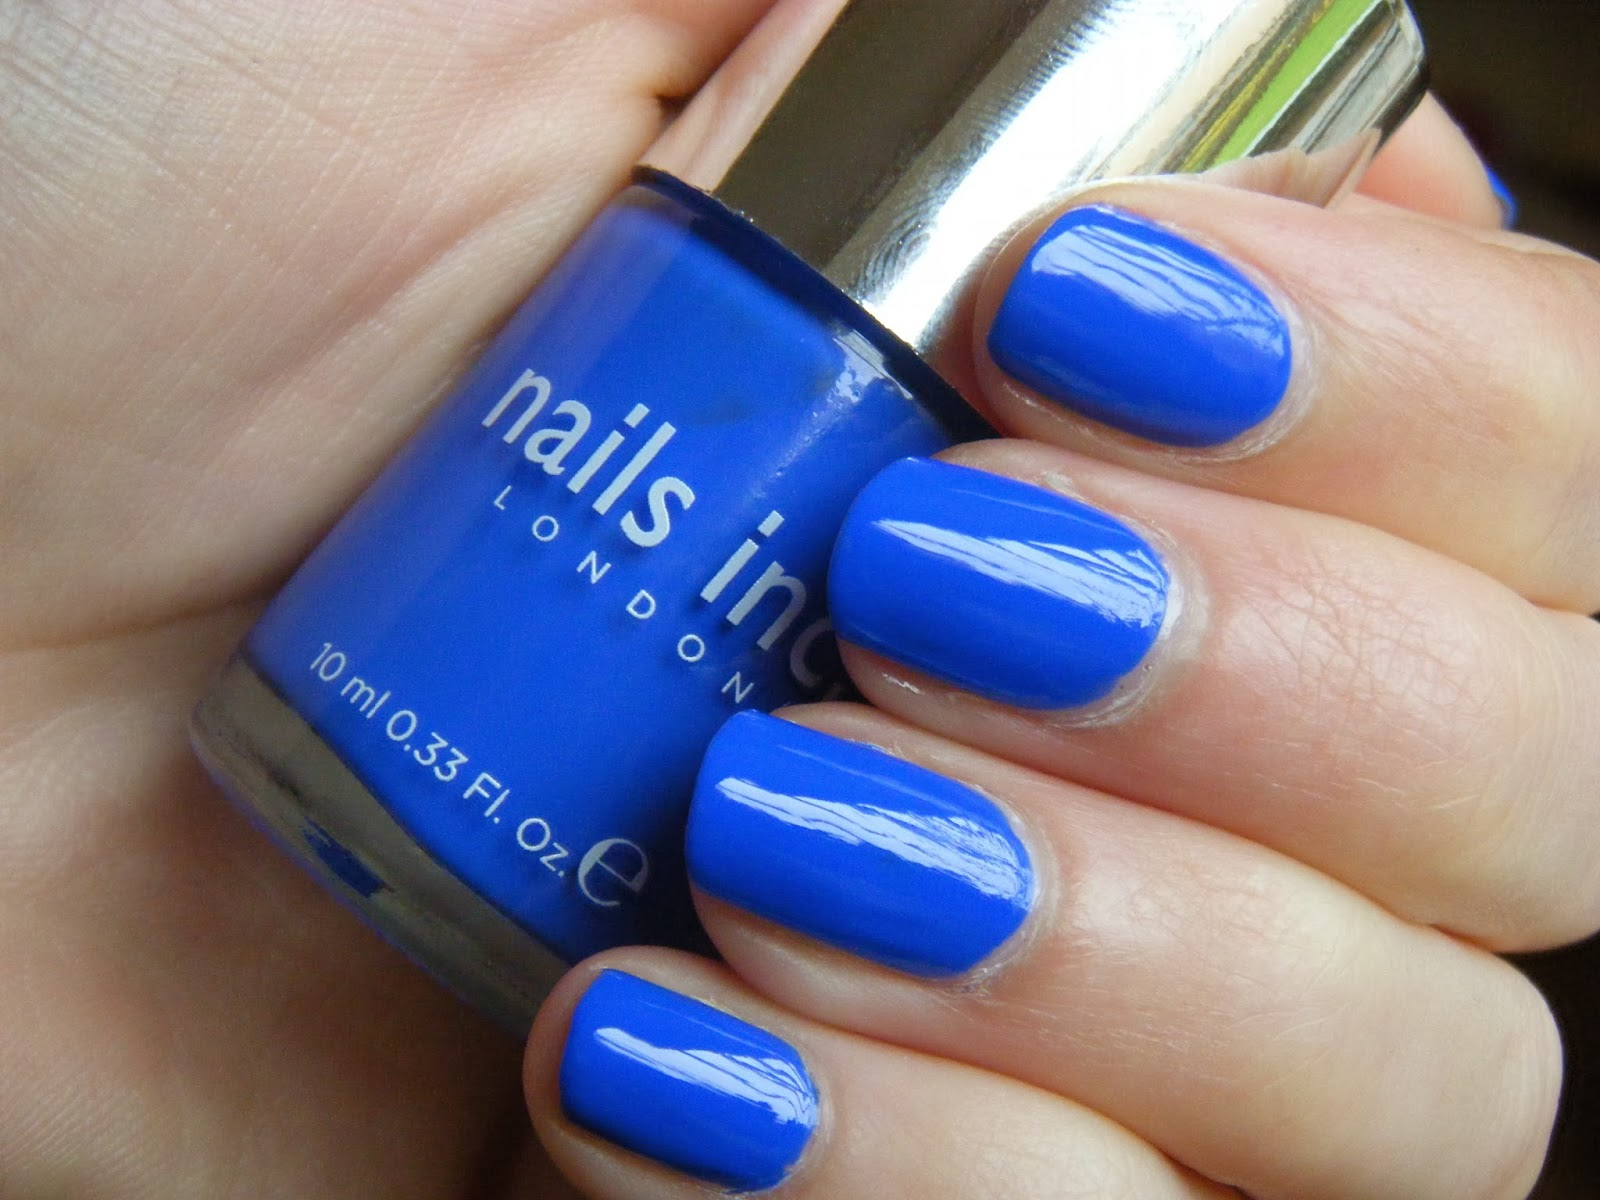 Nails Inc, Busy Girl Nails, Blue